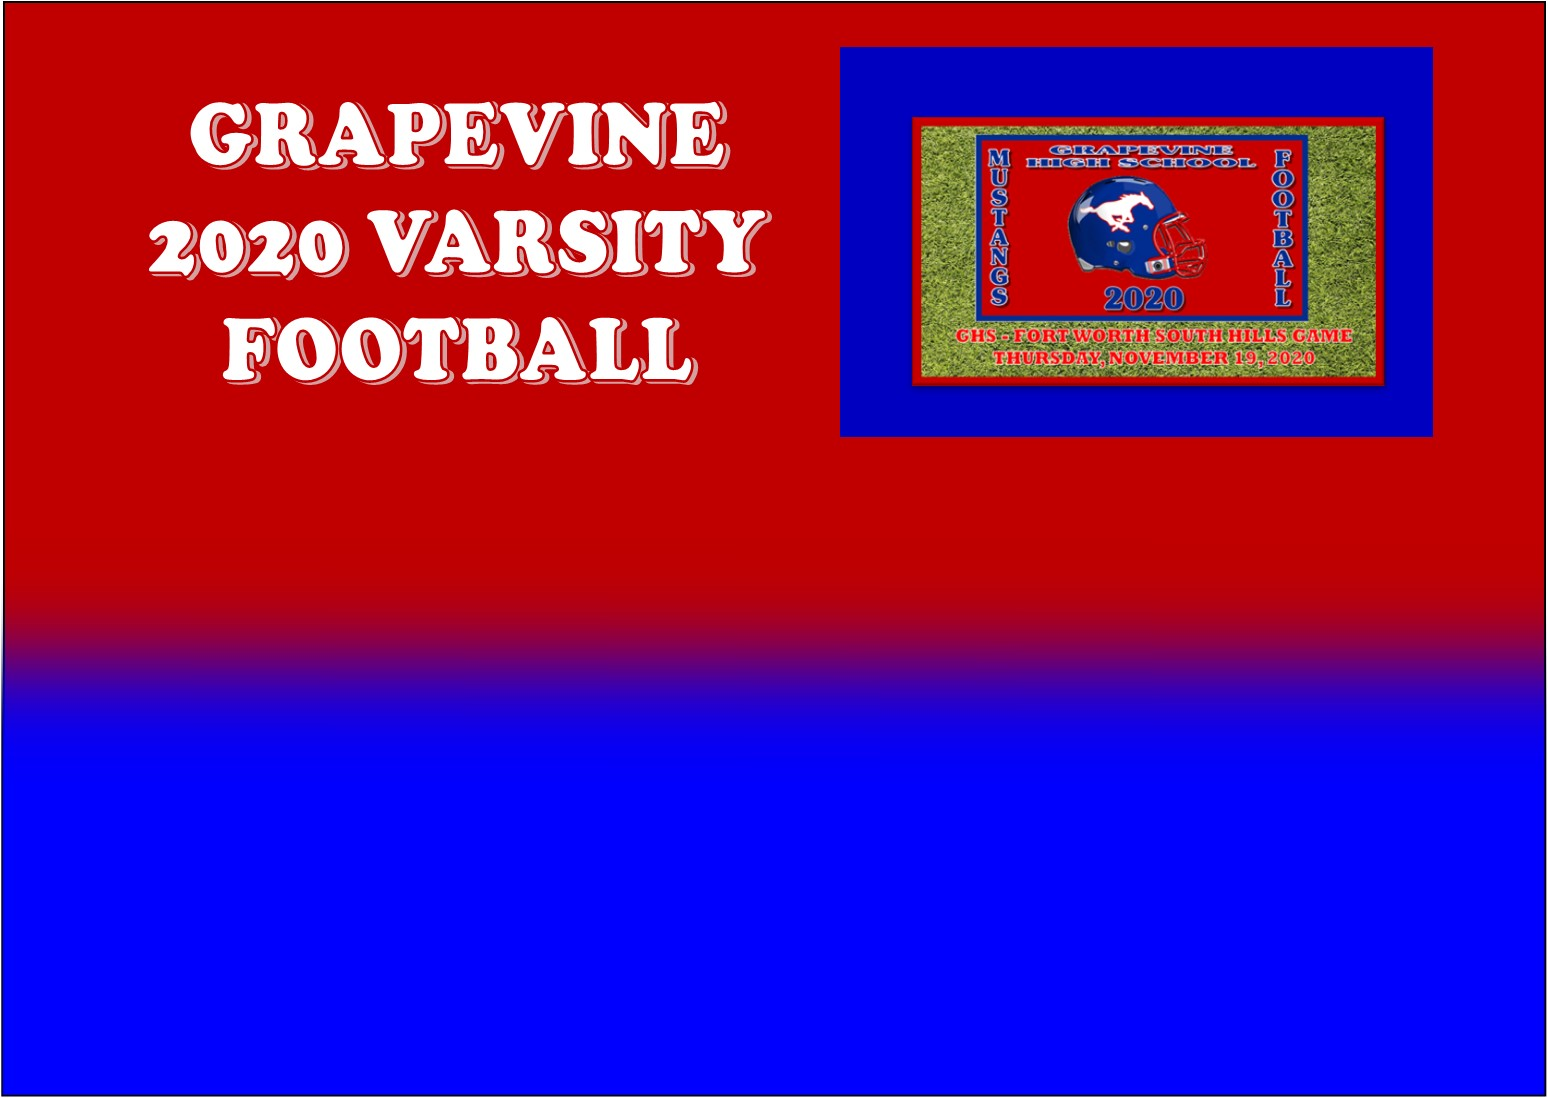 GCISD Football:  Grapevine Mustangs Hammer Fort Worth South Hills Scorpions 59-14